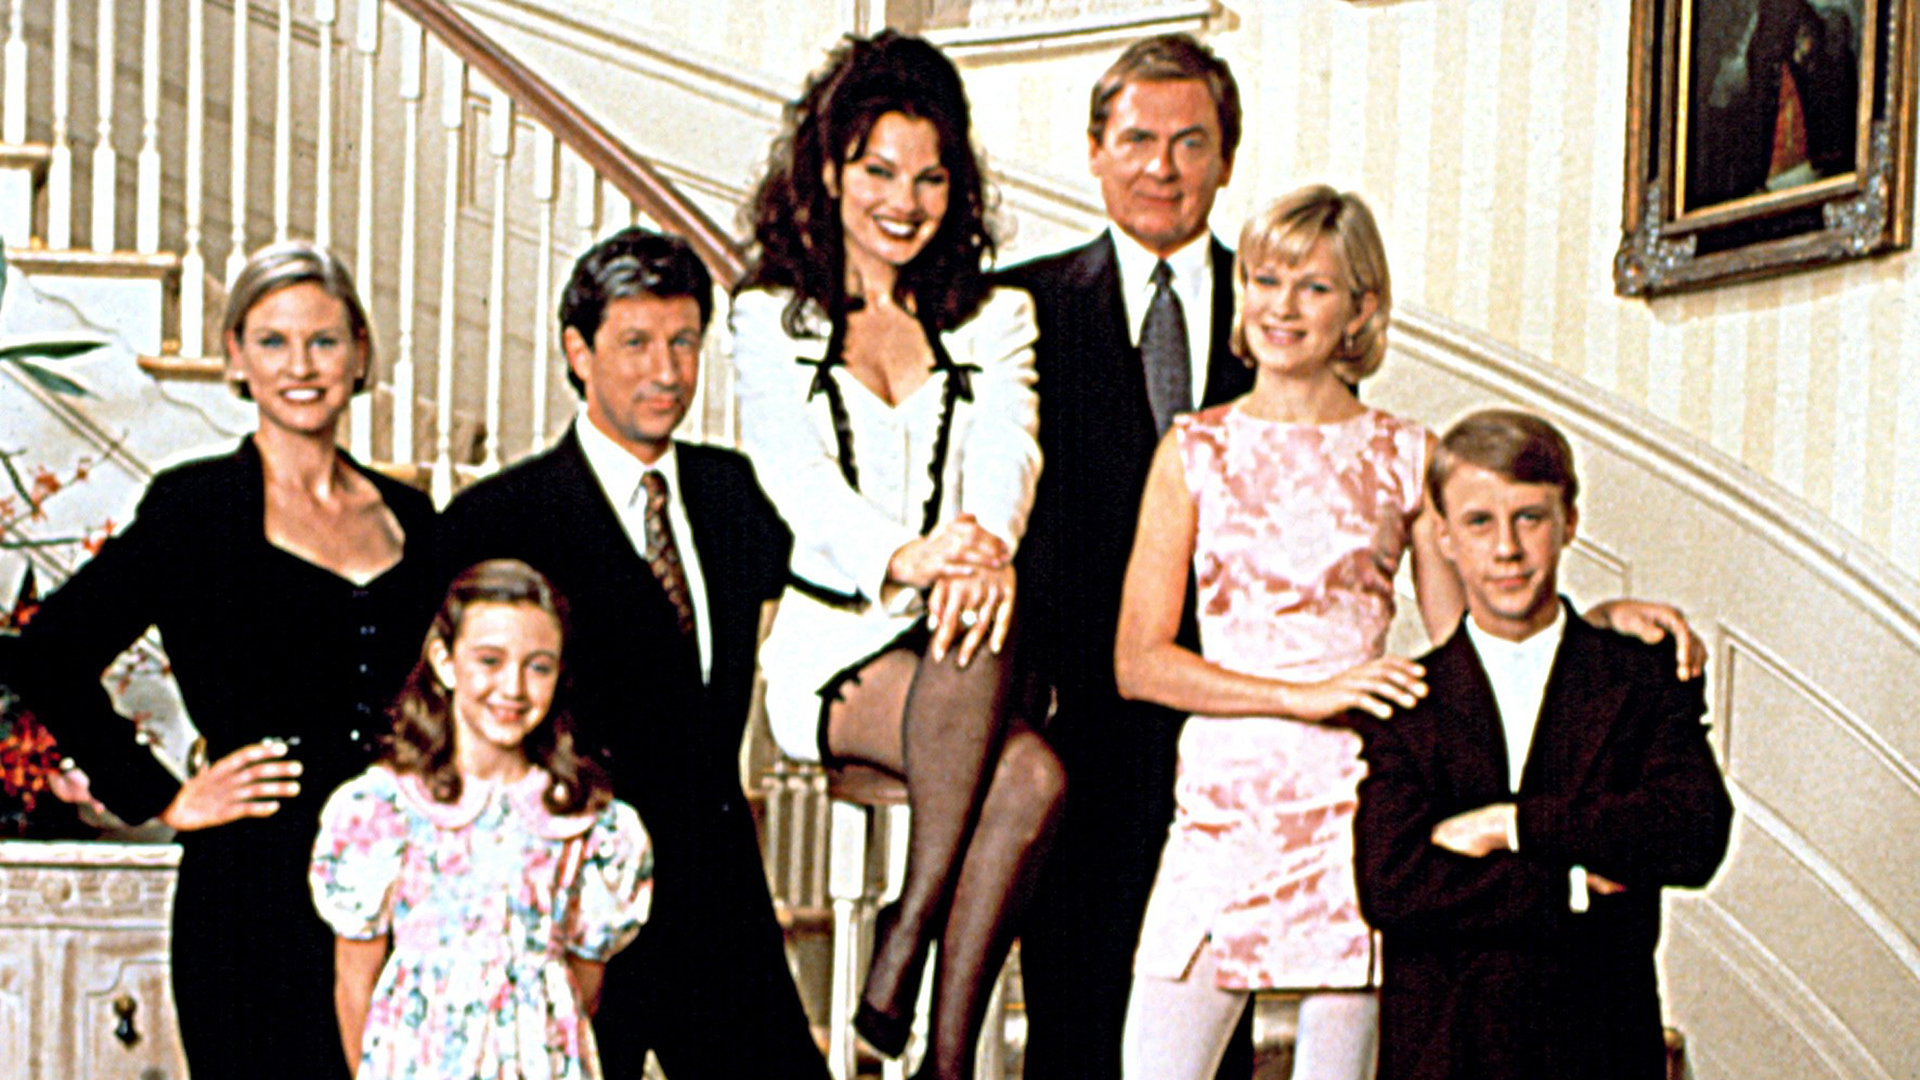 Image result for the nanny fran drescher public domain